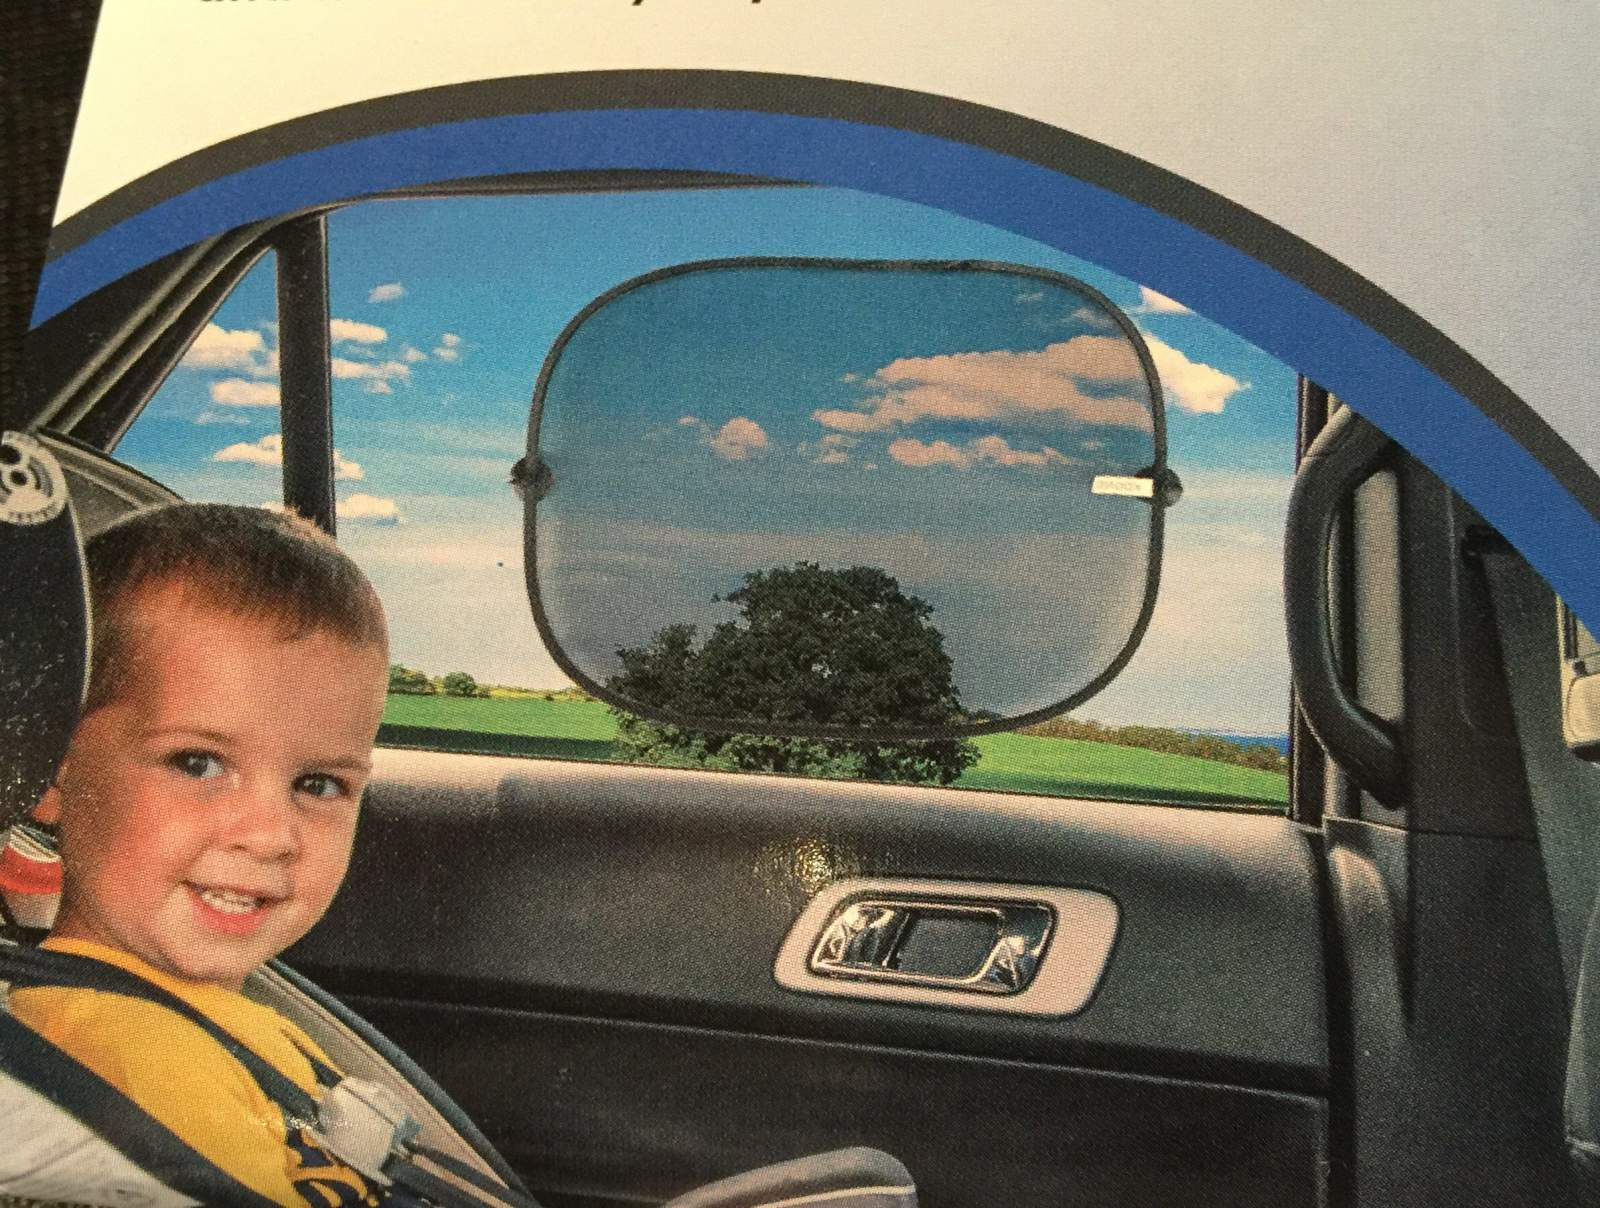 kogno car sunshades packaging shows a boy in car seat with window shade